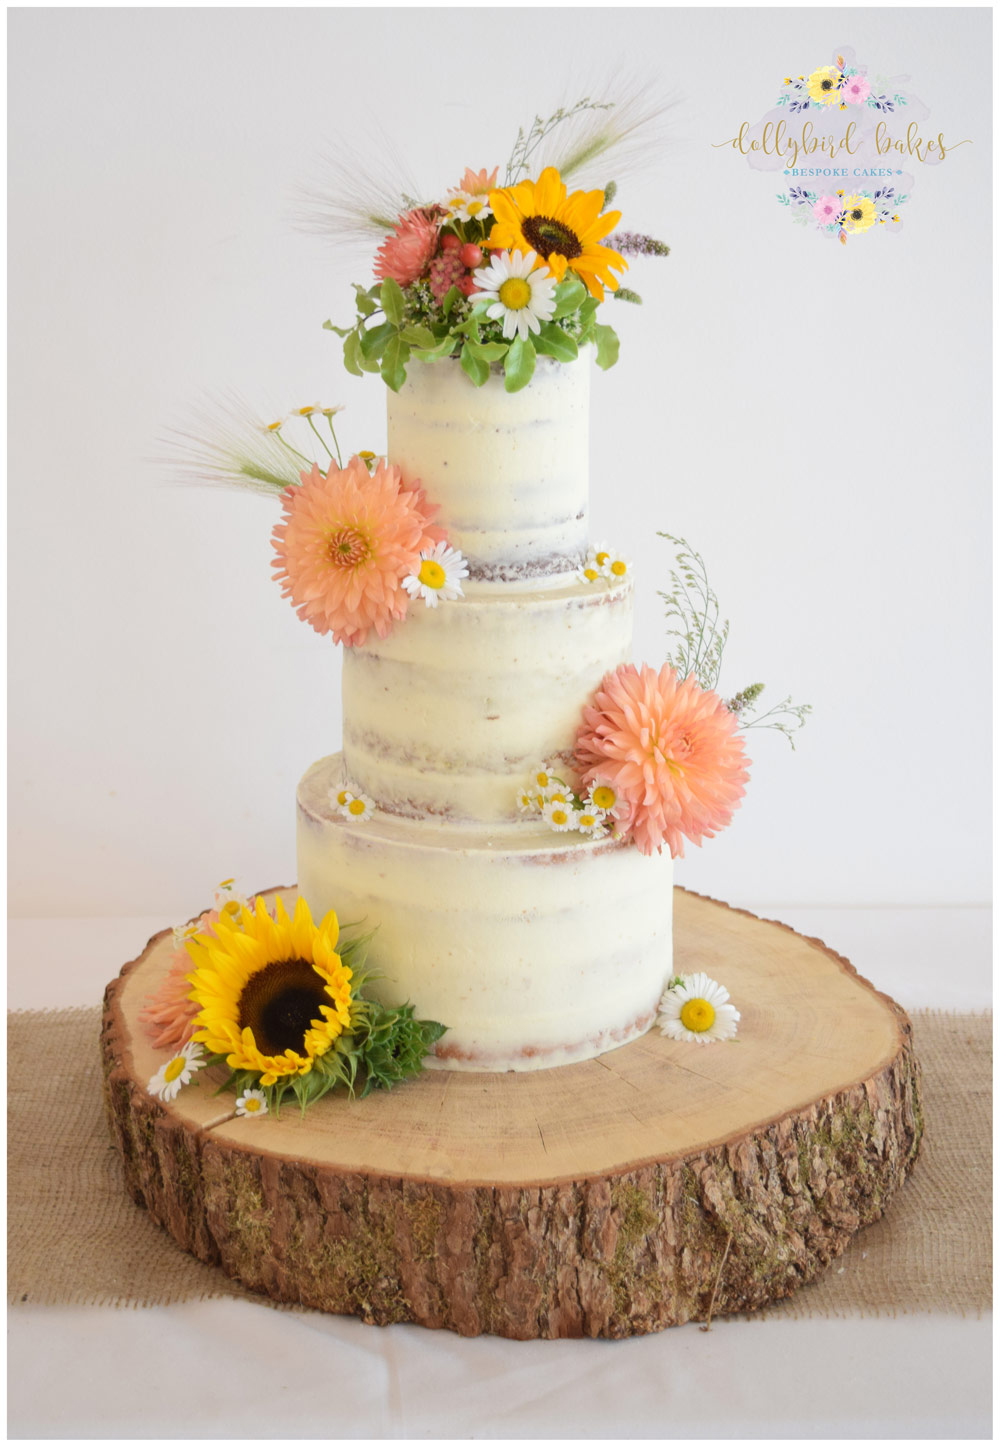 Wedding Cakes Launceston Cornwall